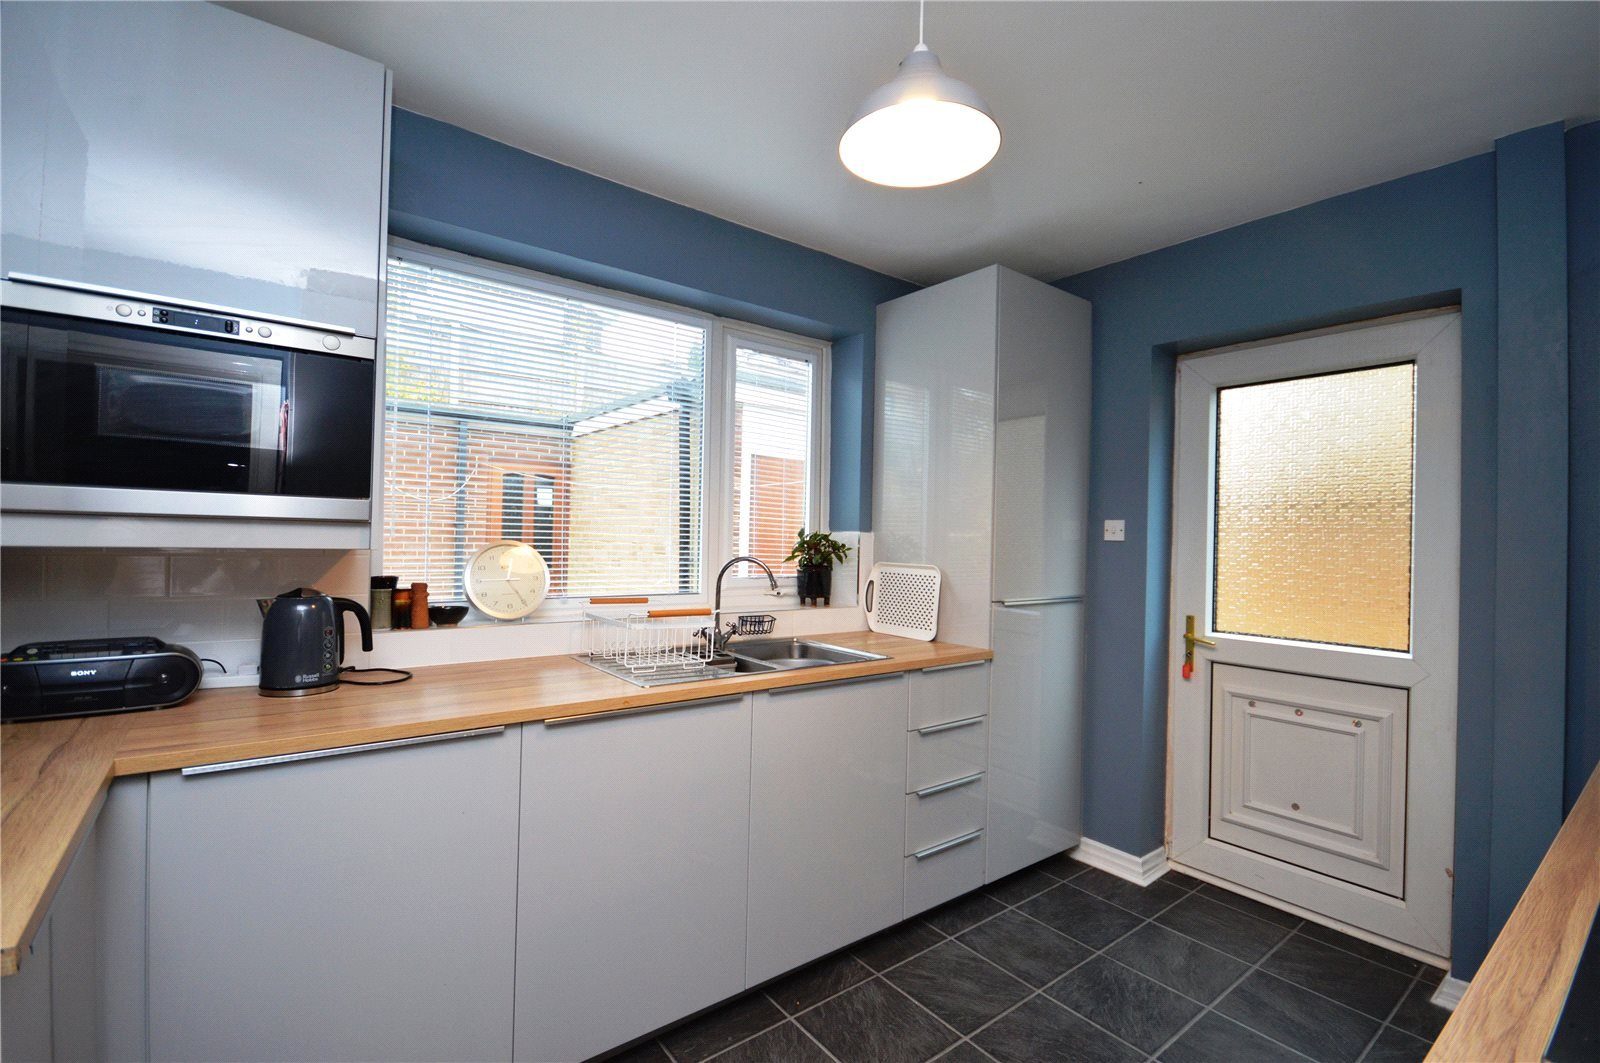 Property for sale in Wakefield, interior modern fitted kitchen